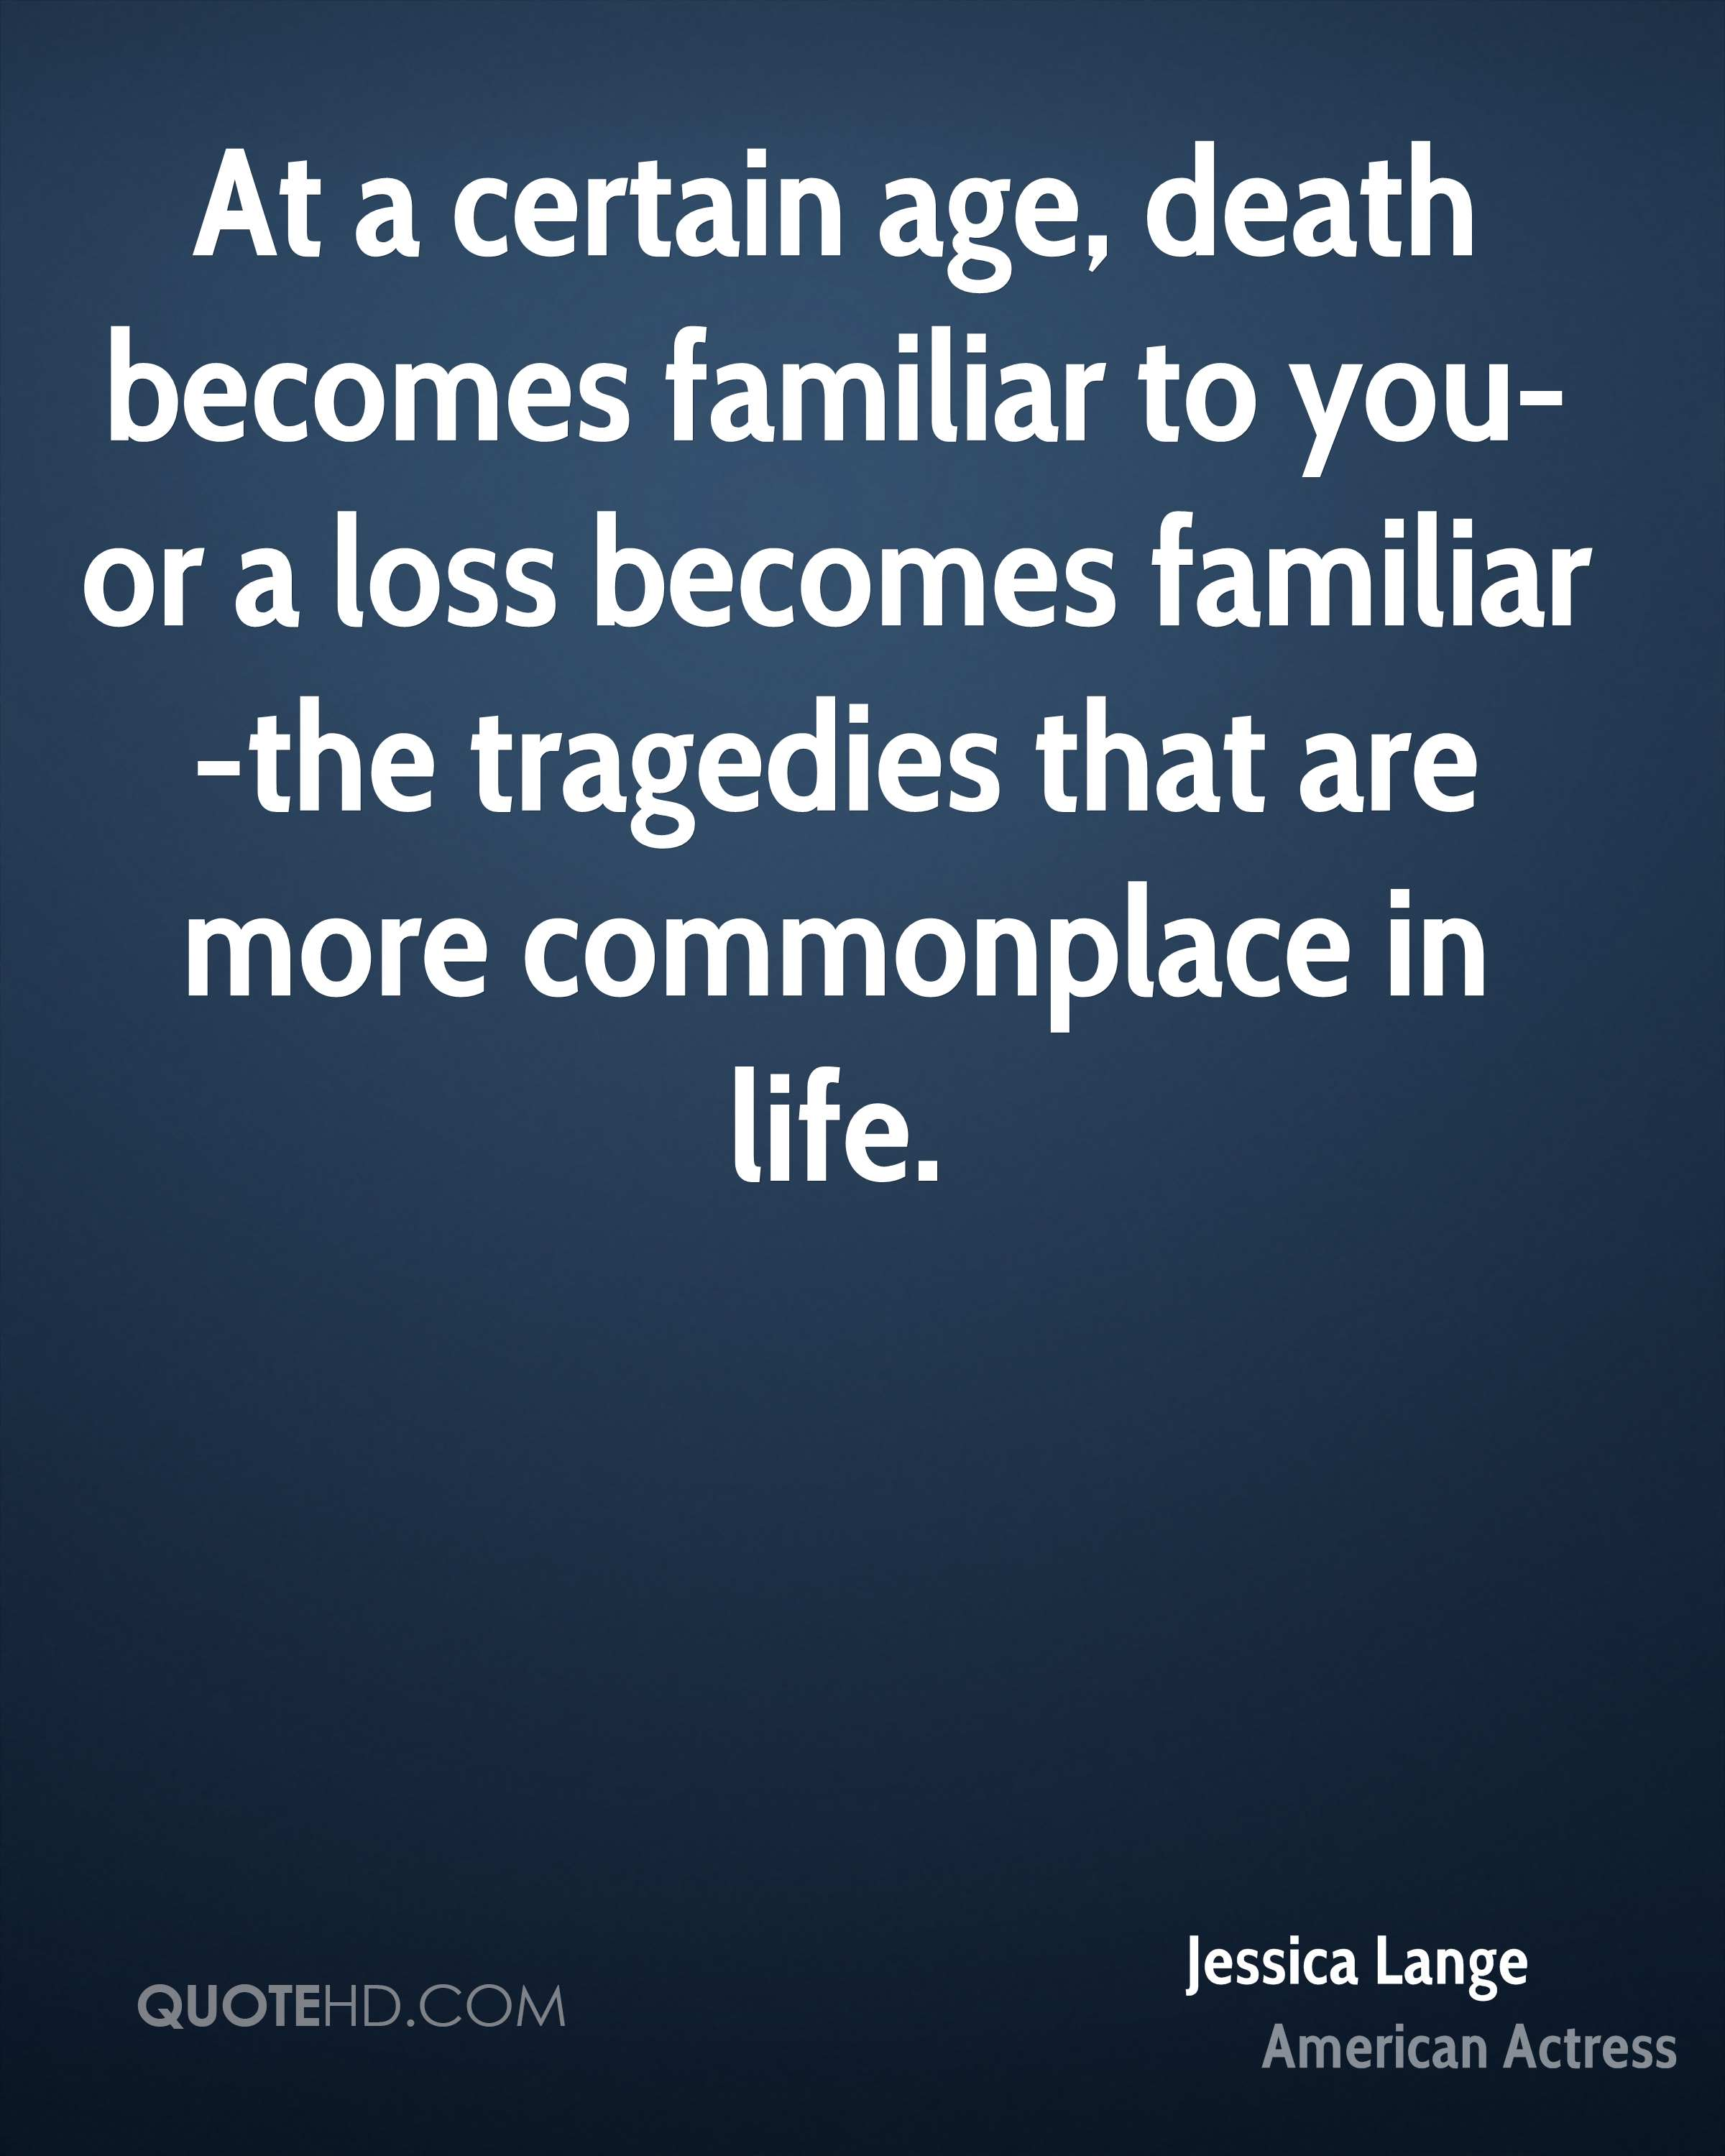 Loss Of Life Quotes Jessica Lange Death Quotes  Quotehd